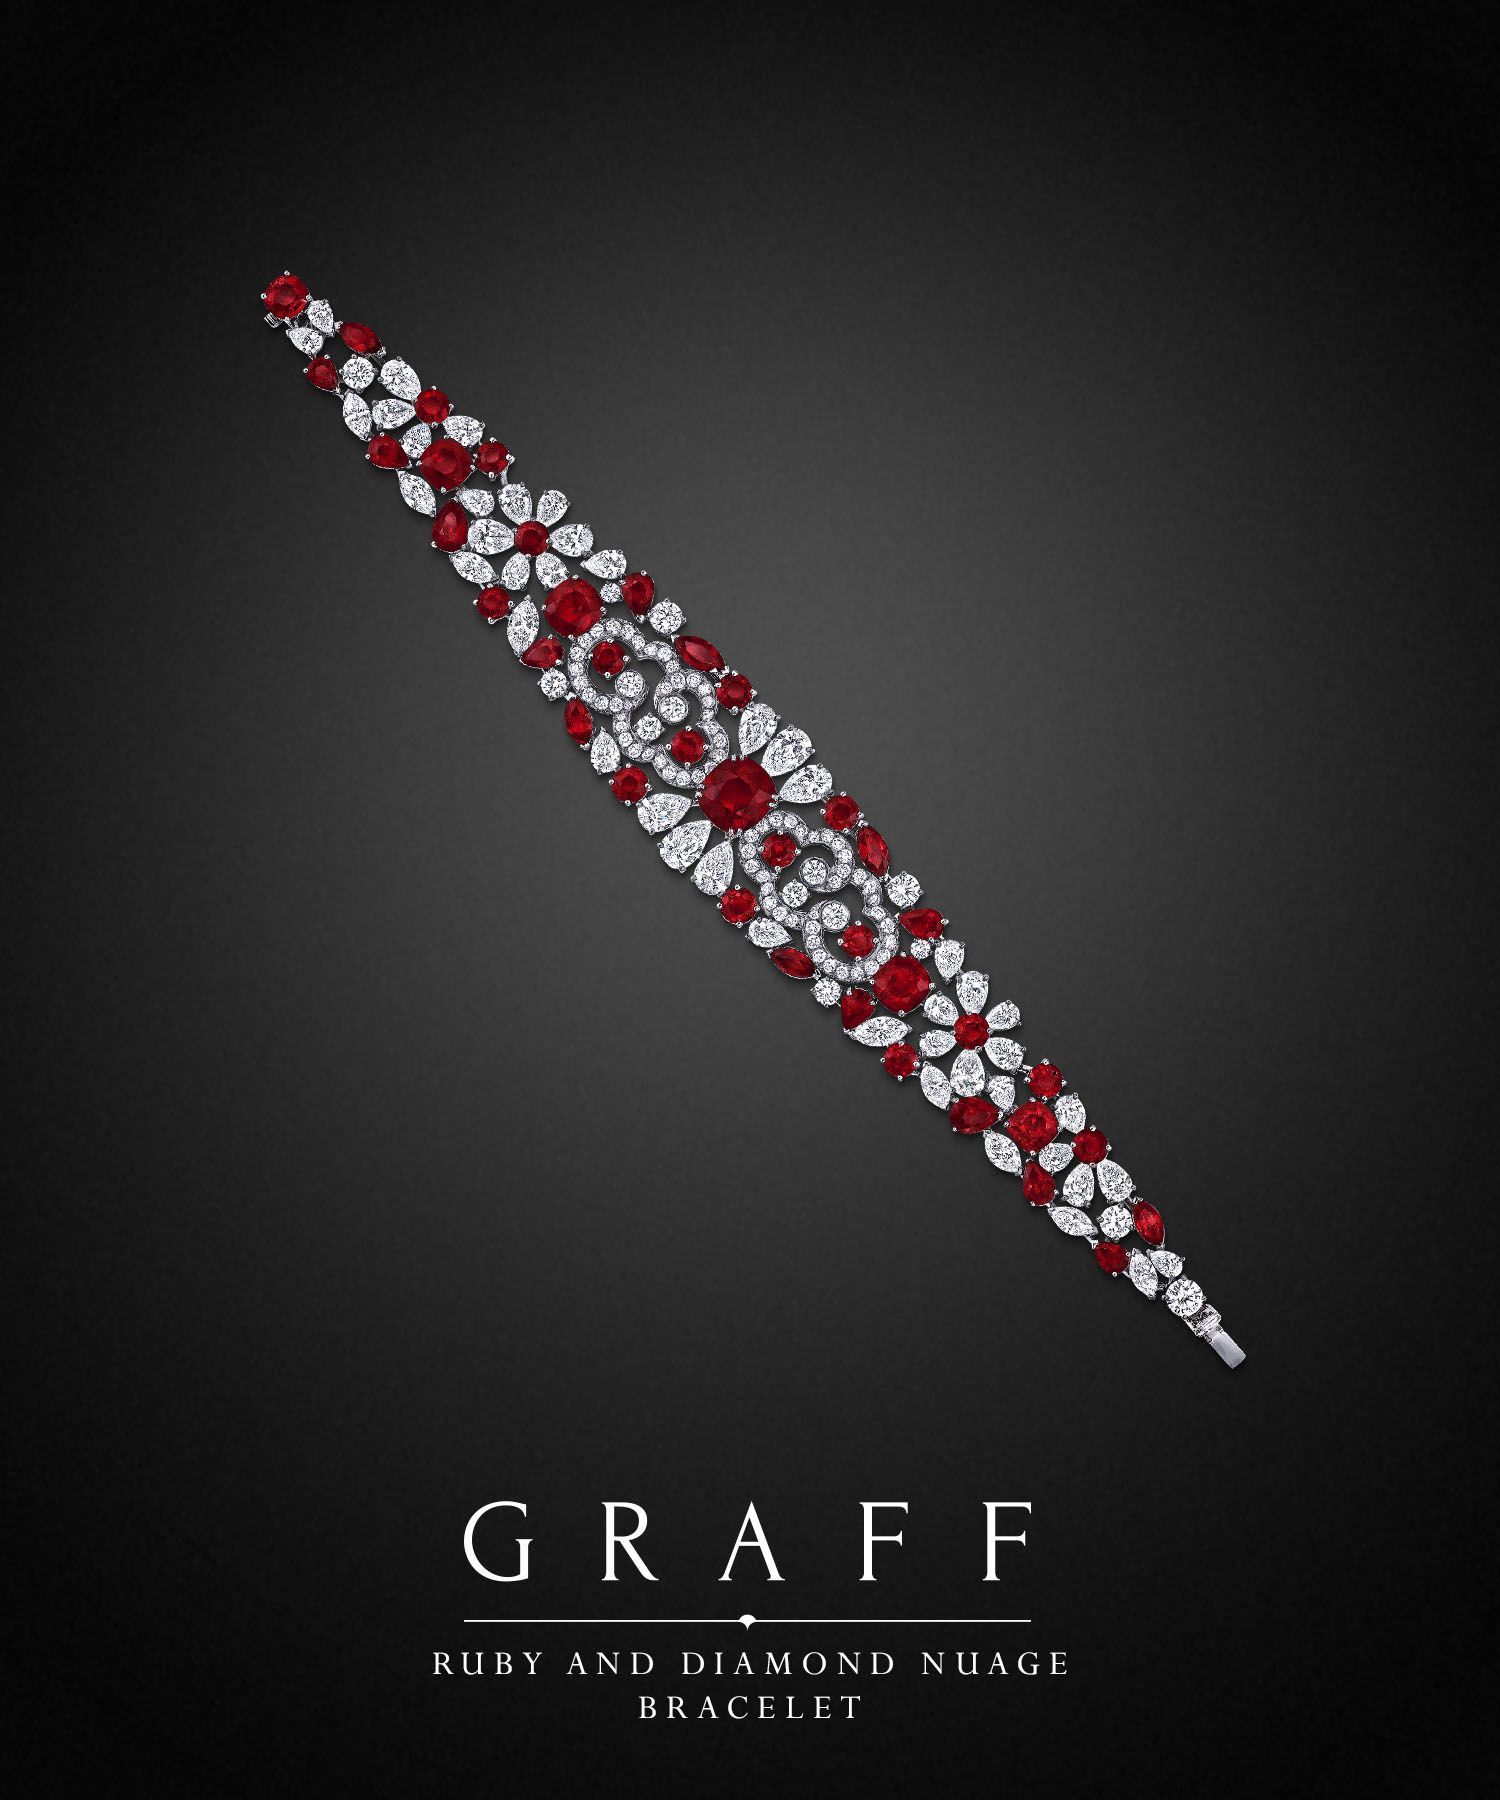 Poster design w graff - Graff Ruby And Diamond Nuage Bracelet Diamonds 20 78 Cts And Rubies 31 19 Cts